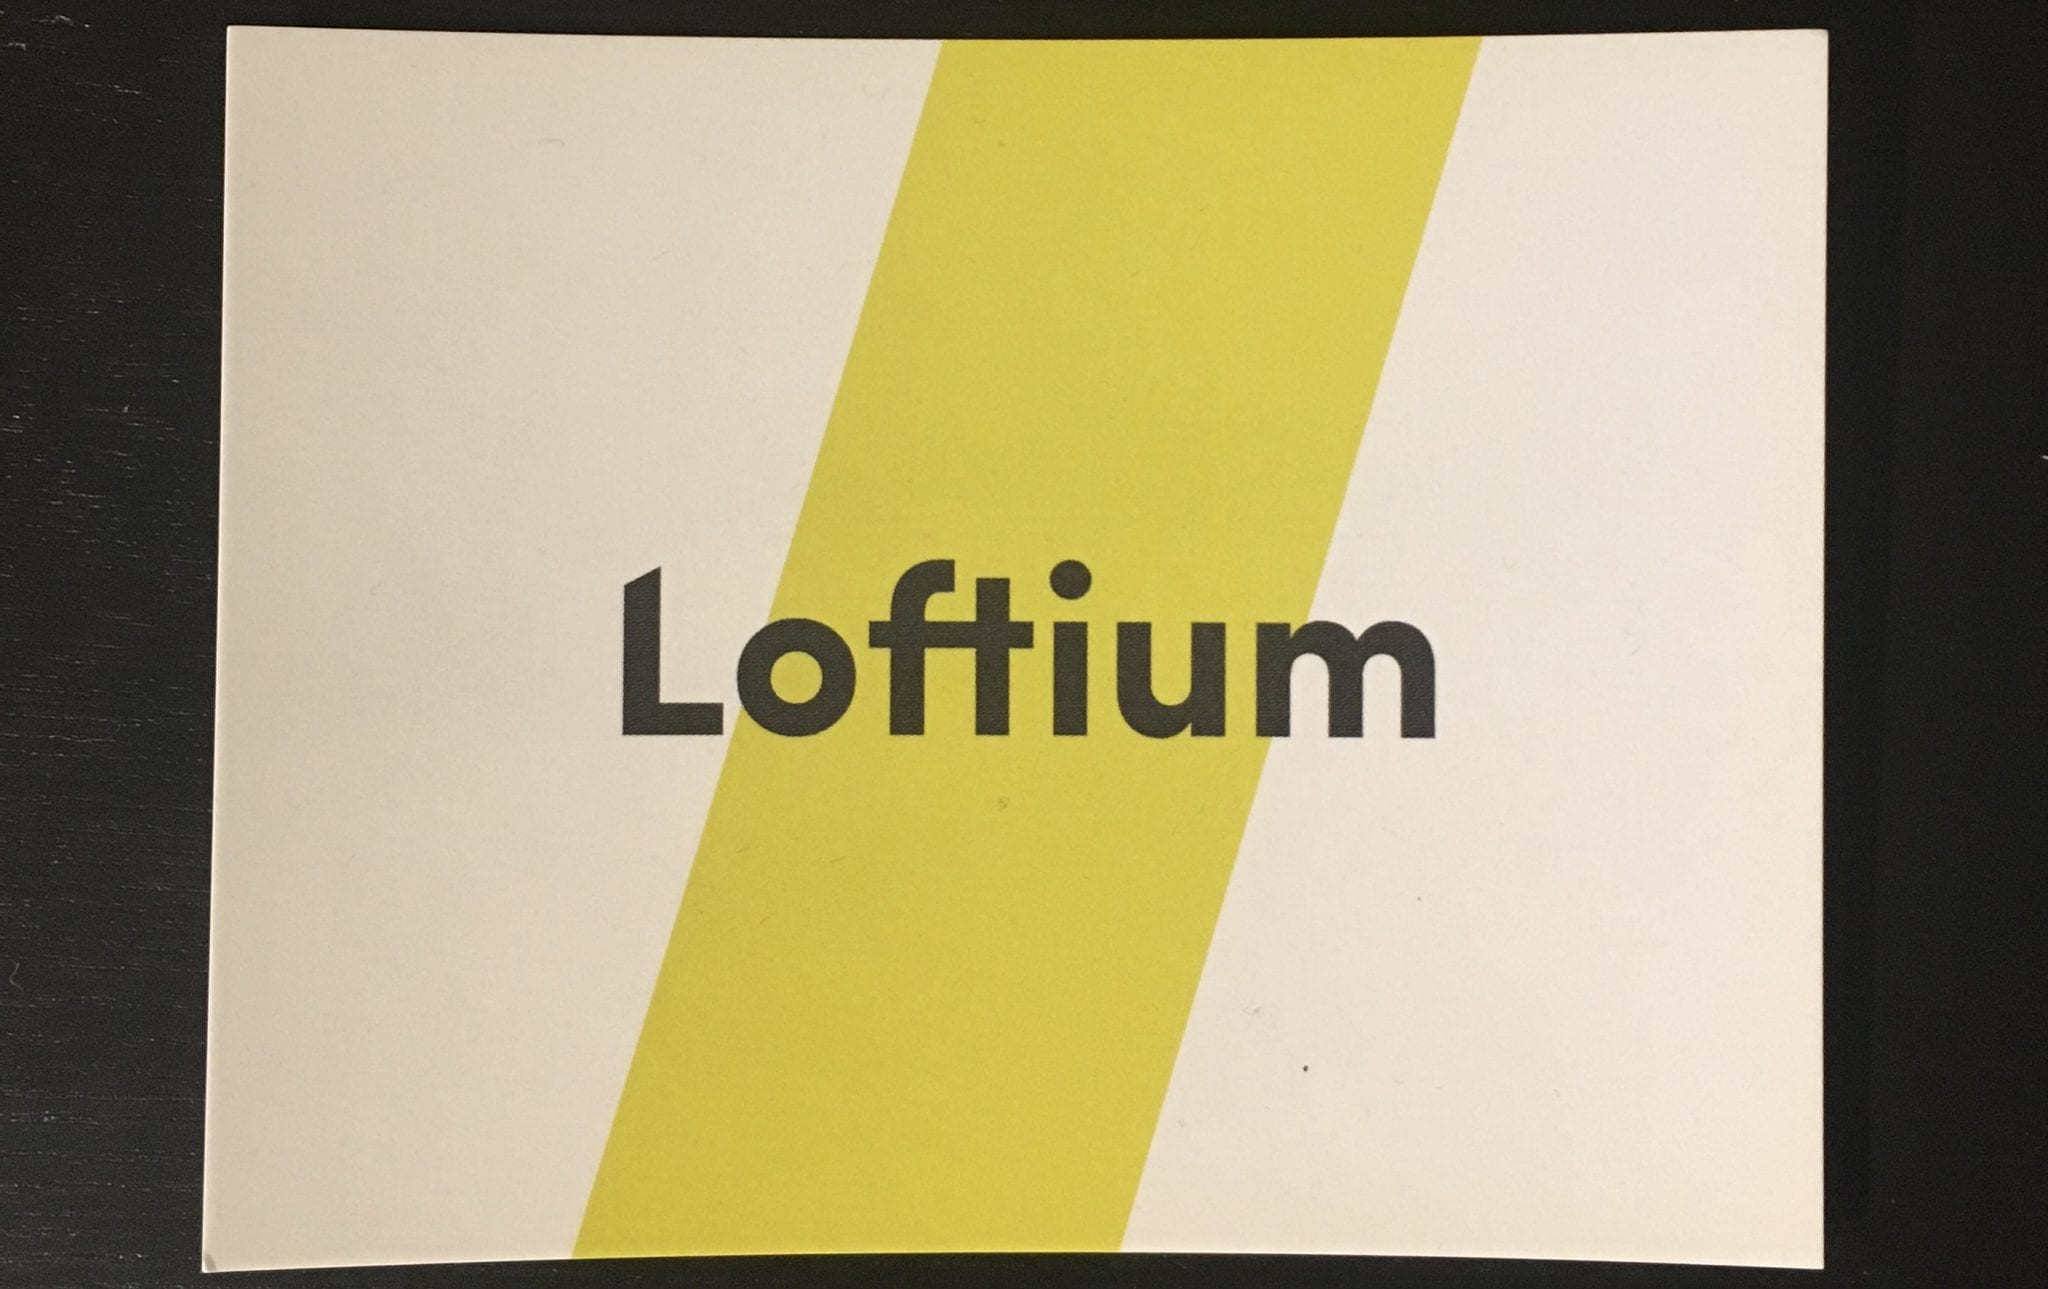 Loftium, a Seattle startup offers up to $50,000 towards your downpayment